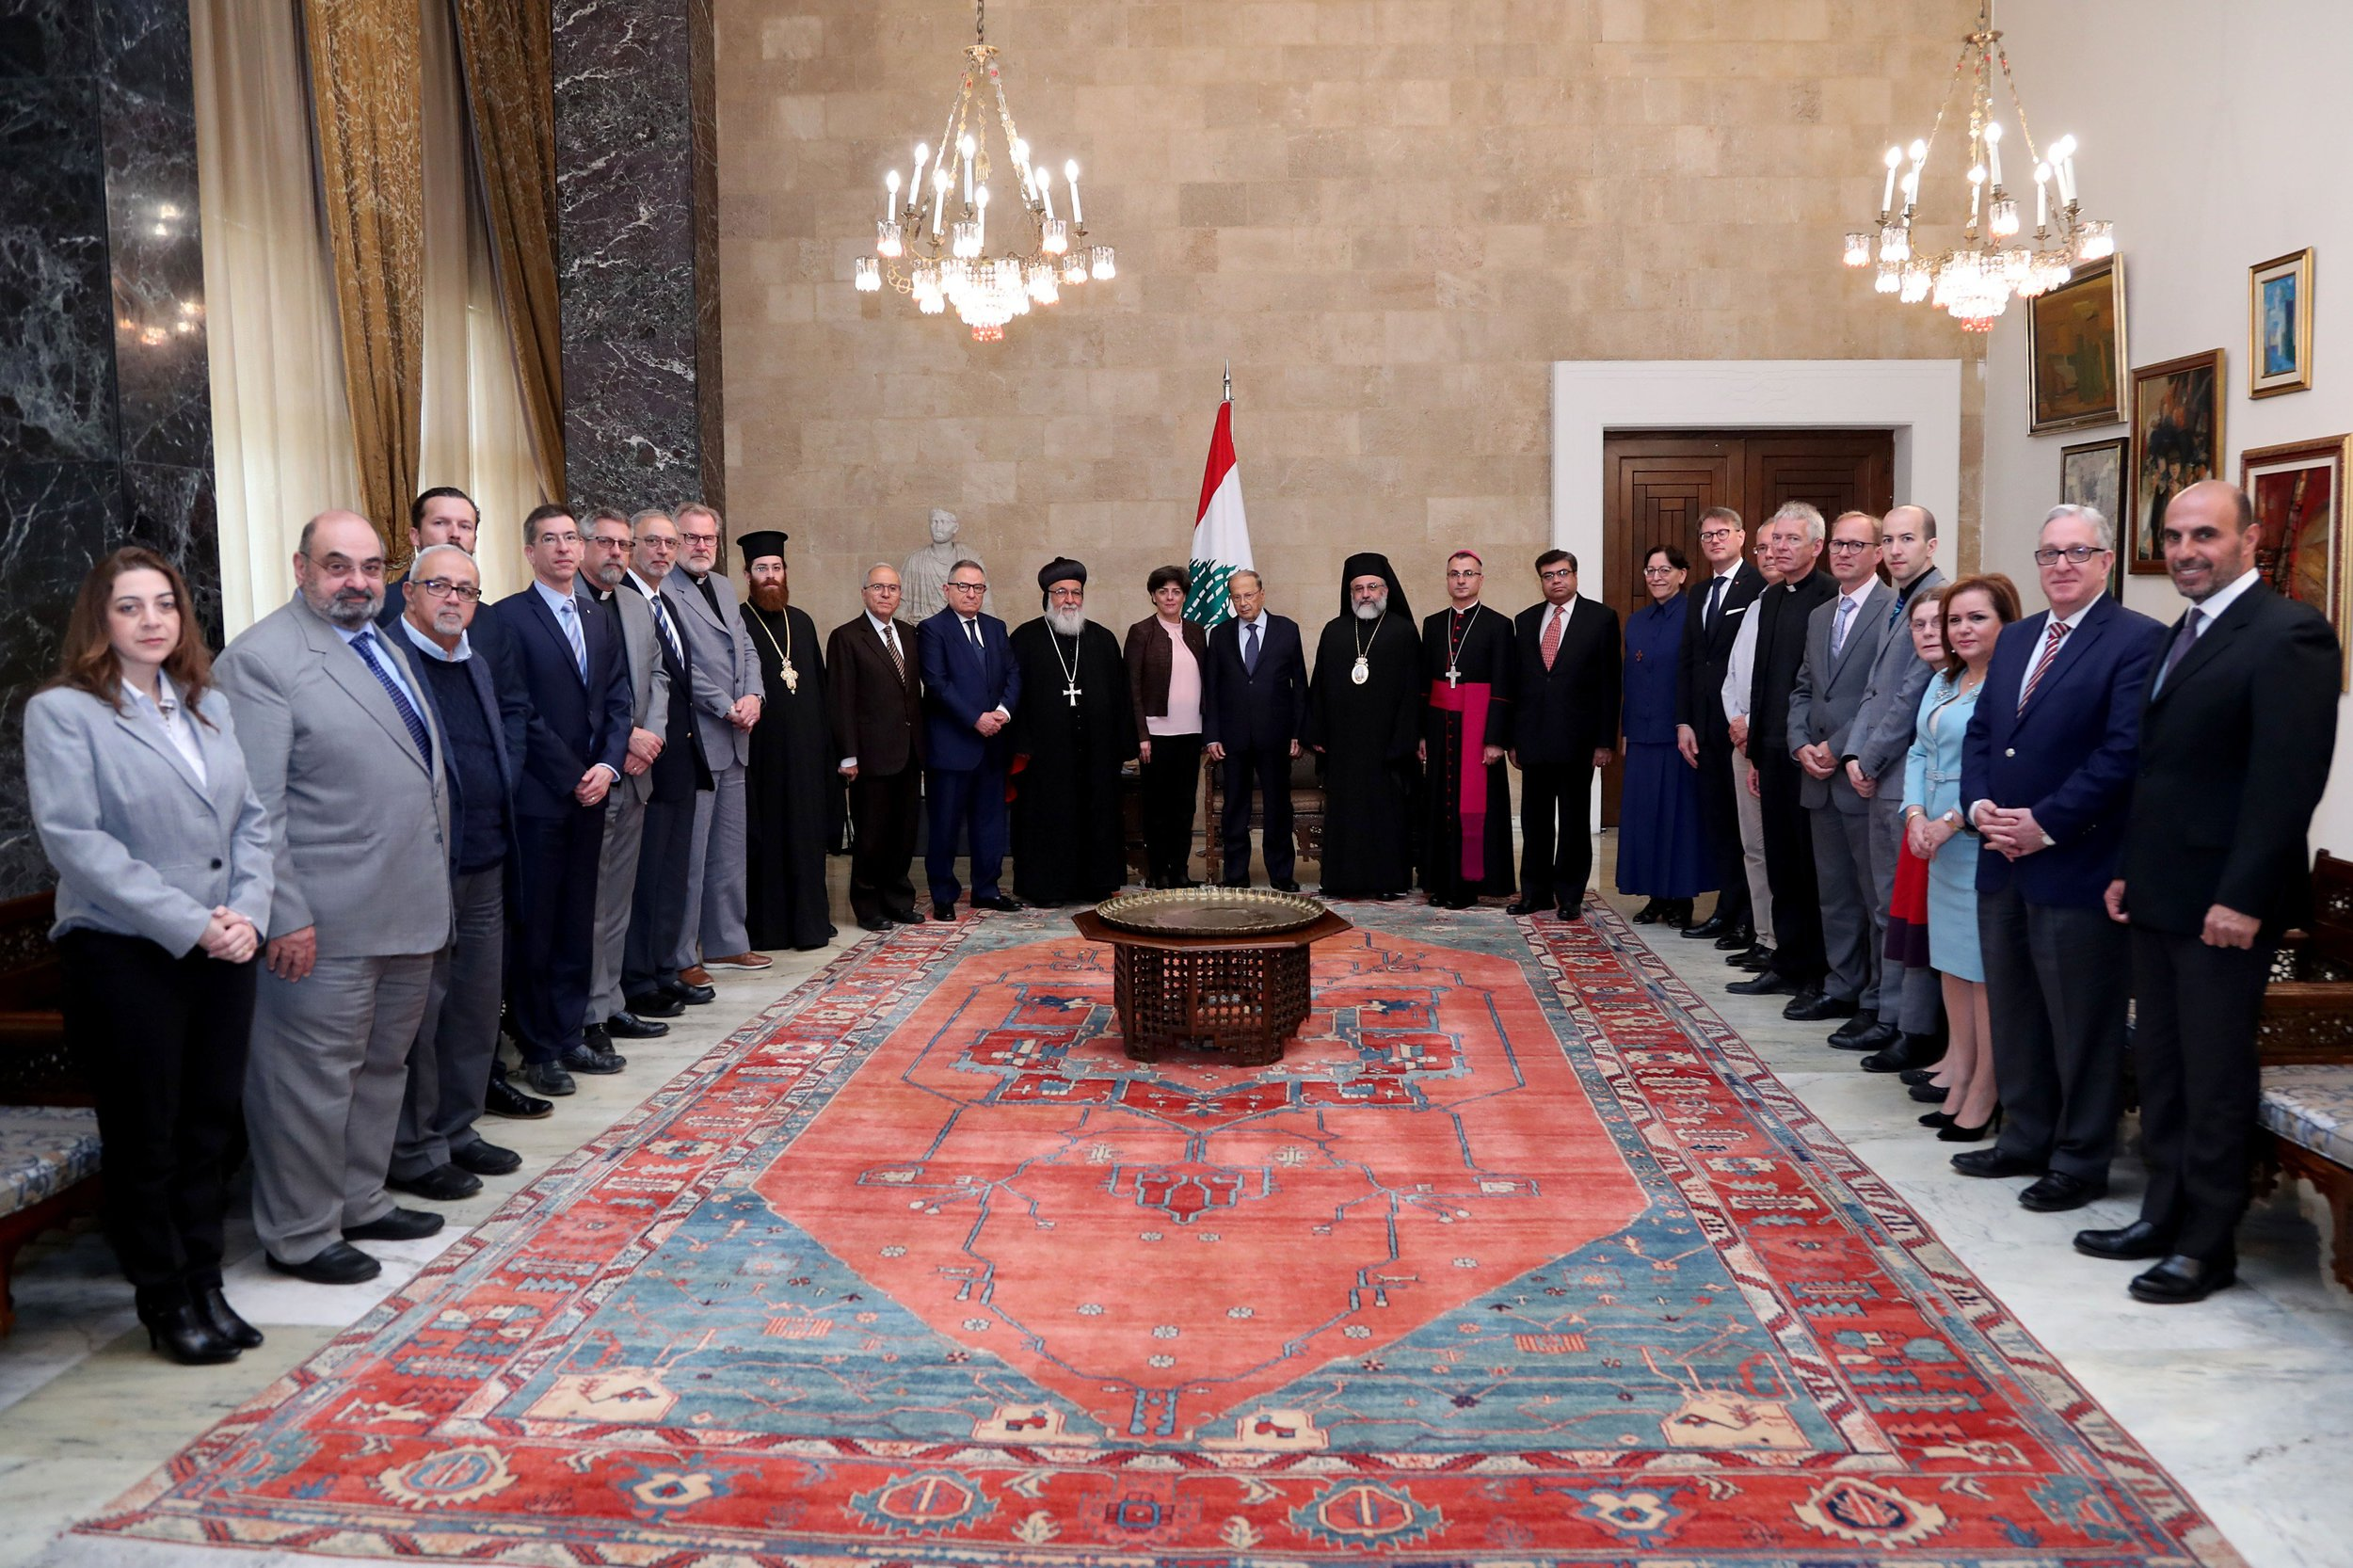 MECC Partners Meeting President Aoun.jpg